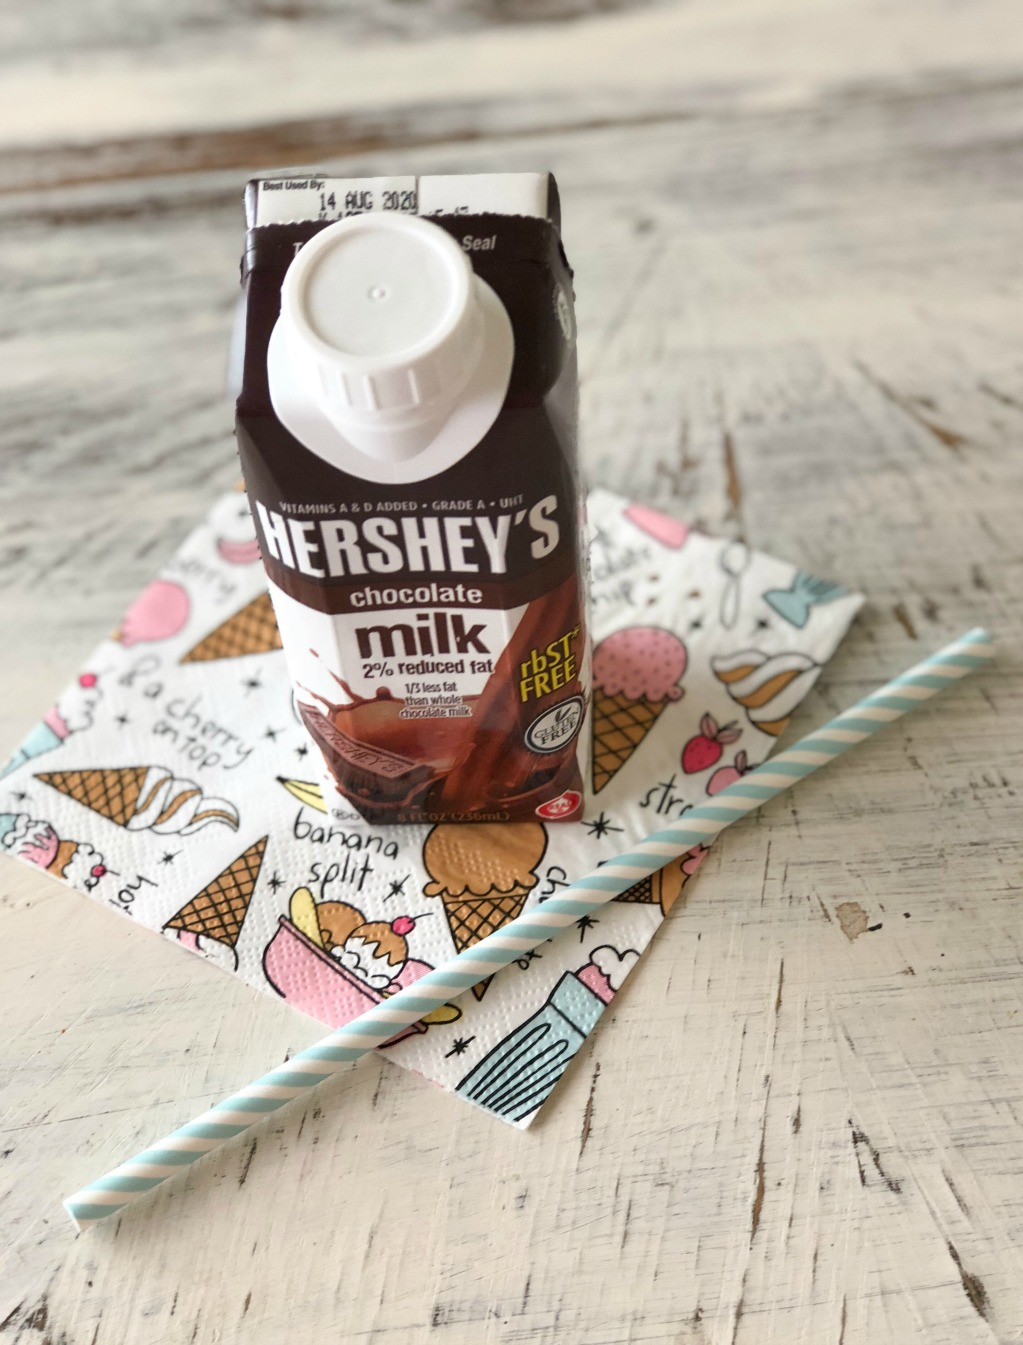 hershey's shelf stable milk and straw on napkin